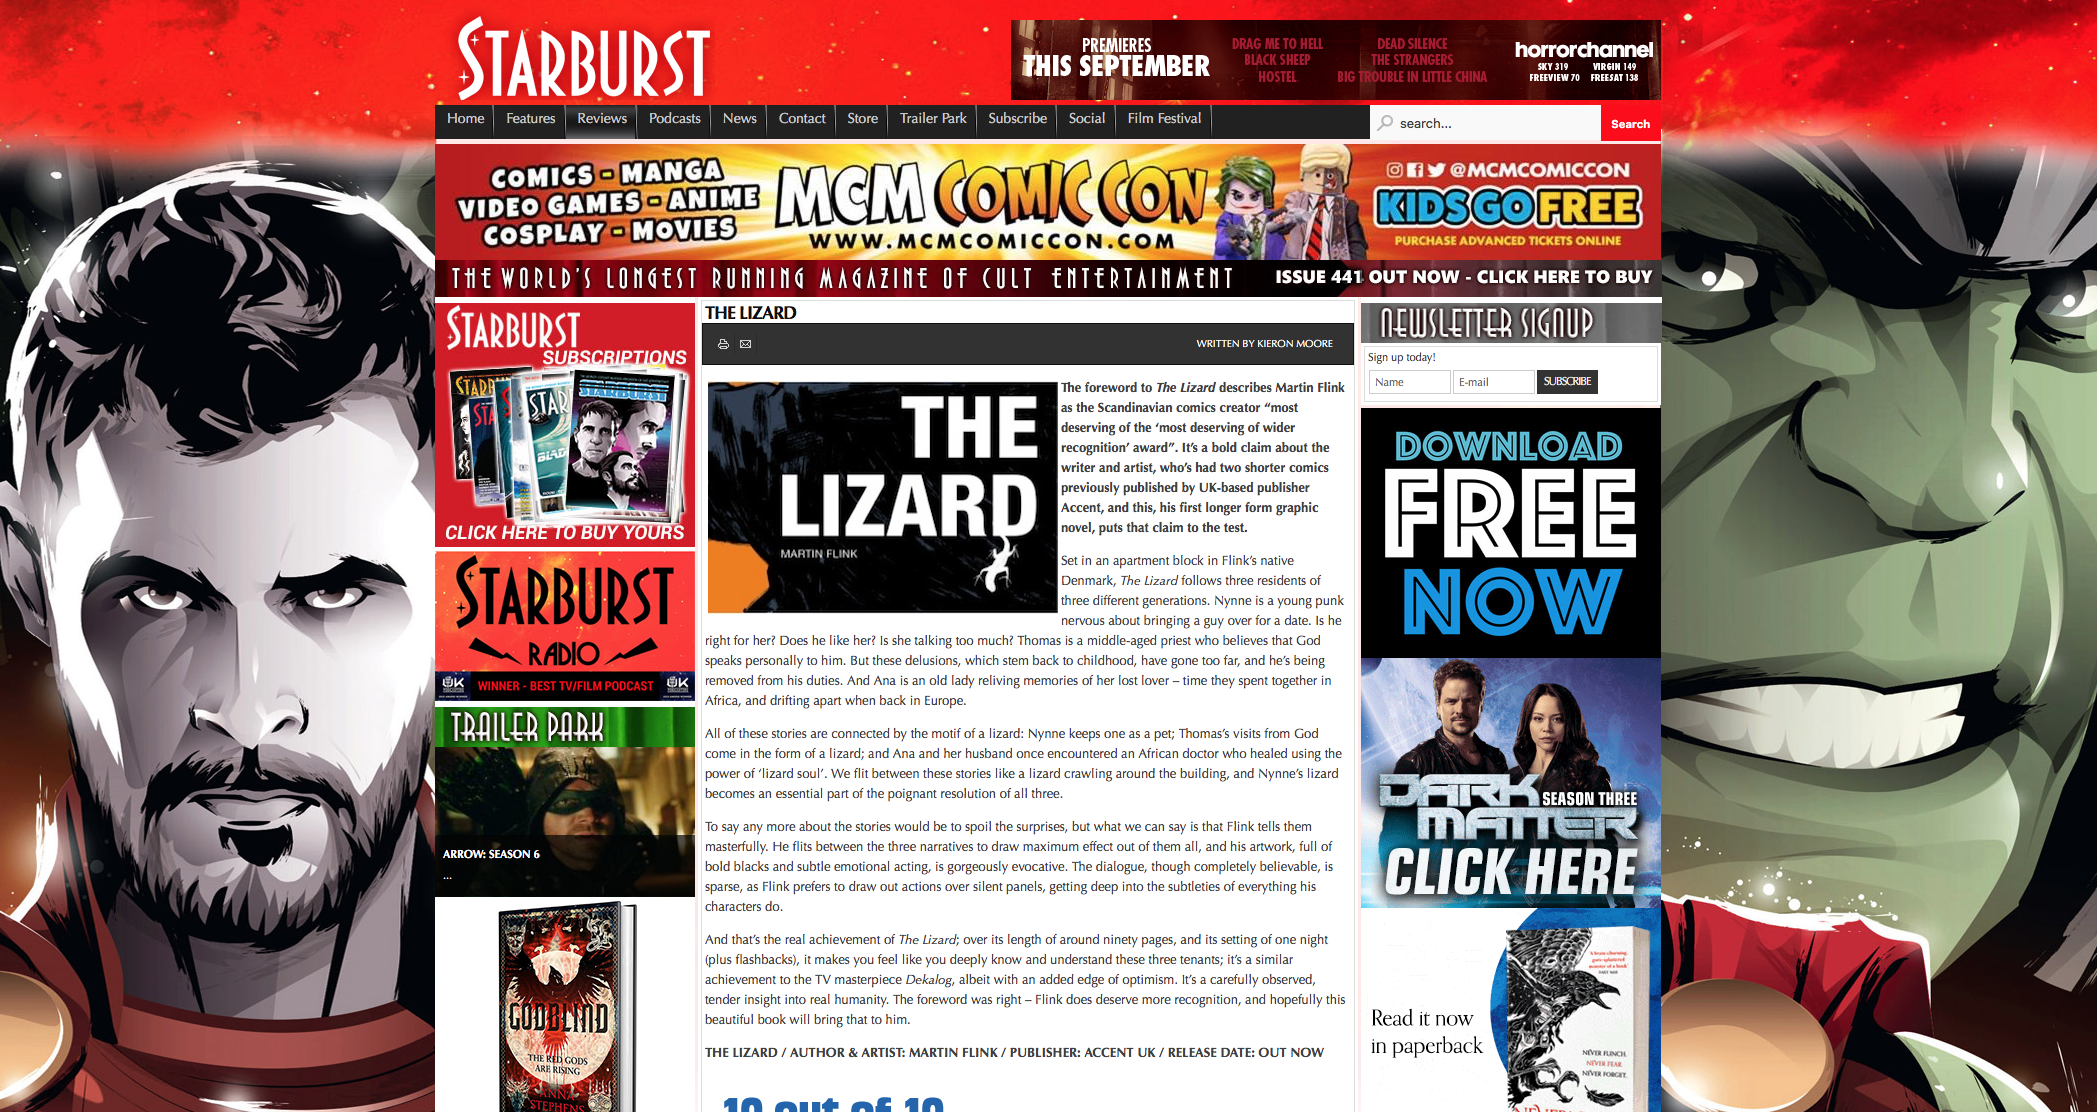 Starburstmagazine The Lizard review